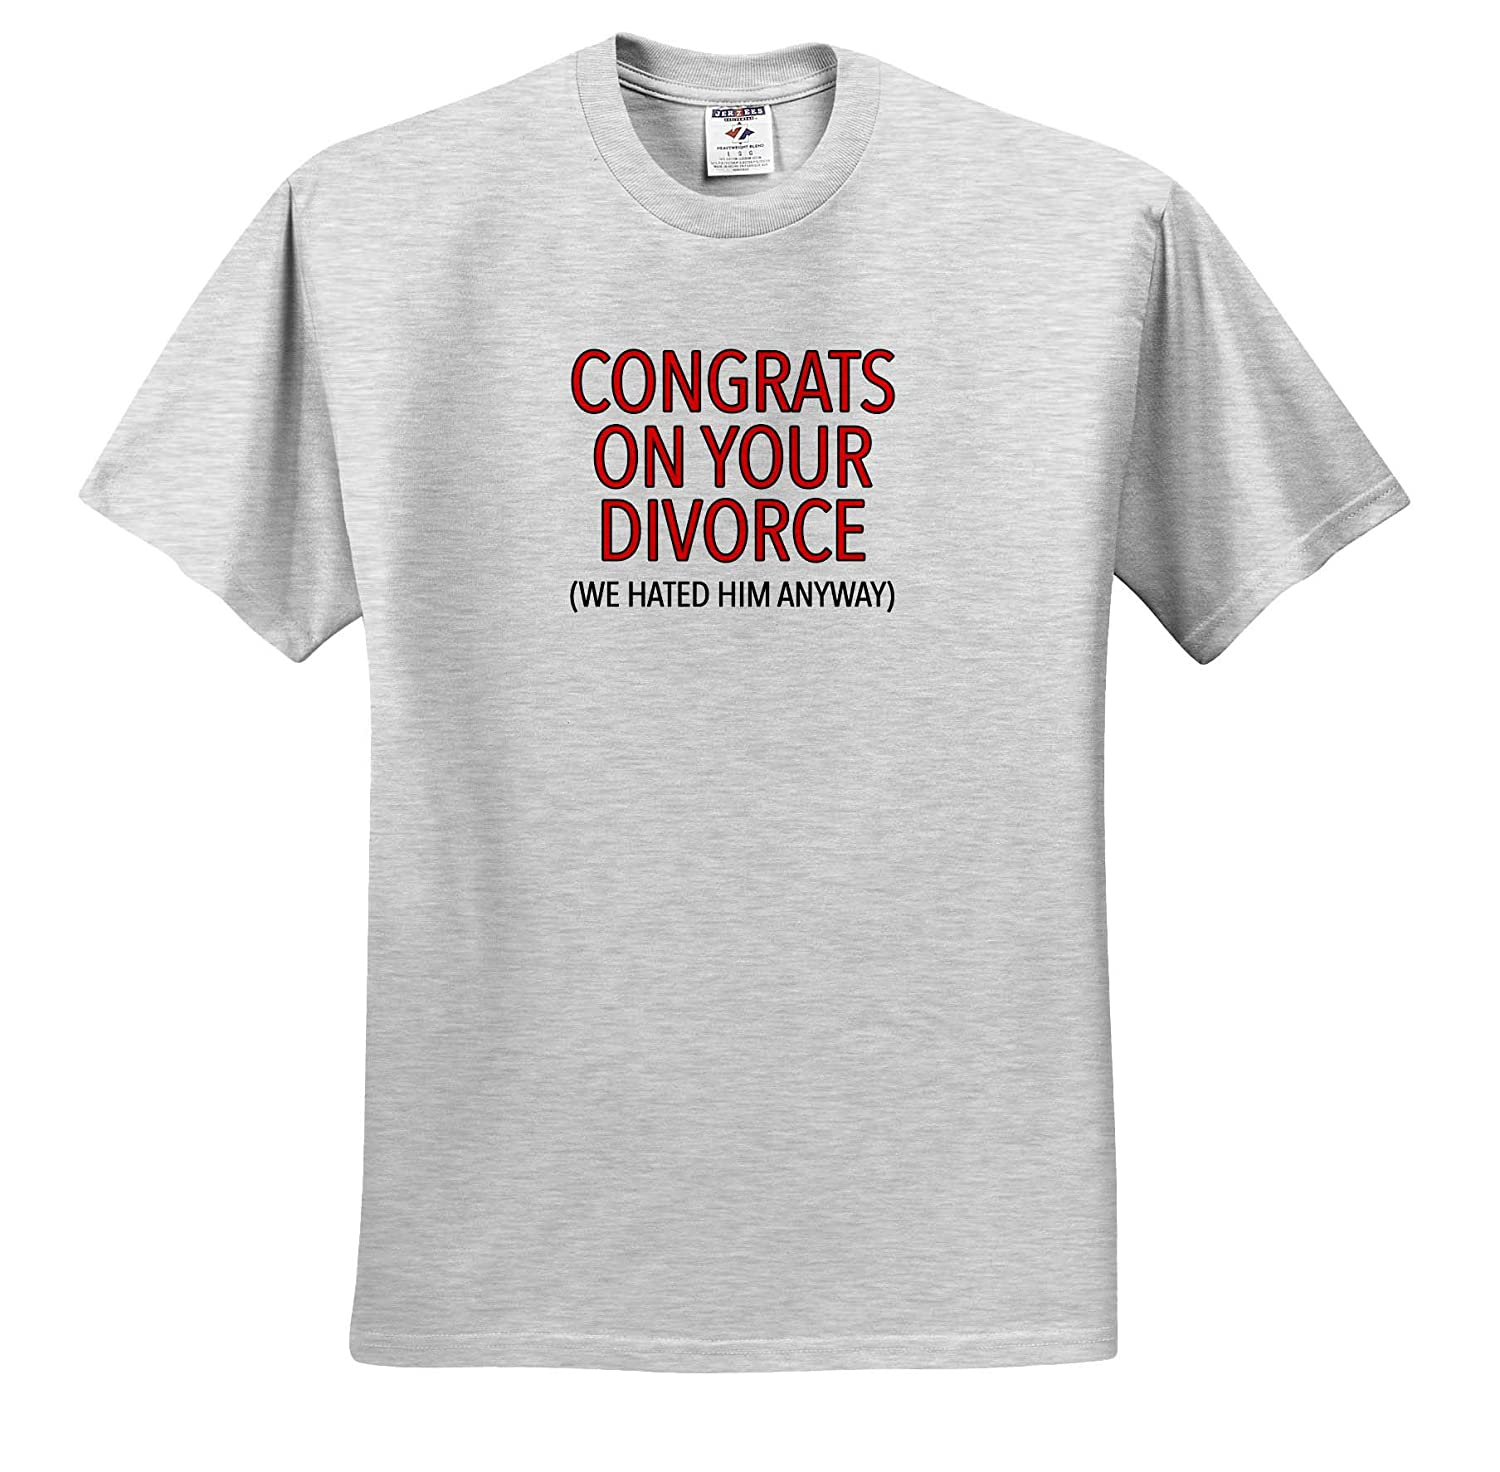 3dRose EvaDane Adult T-Shirt XL ts/_320972 Congrats On Your Divorce Red Funny Sayings